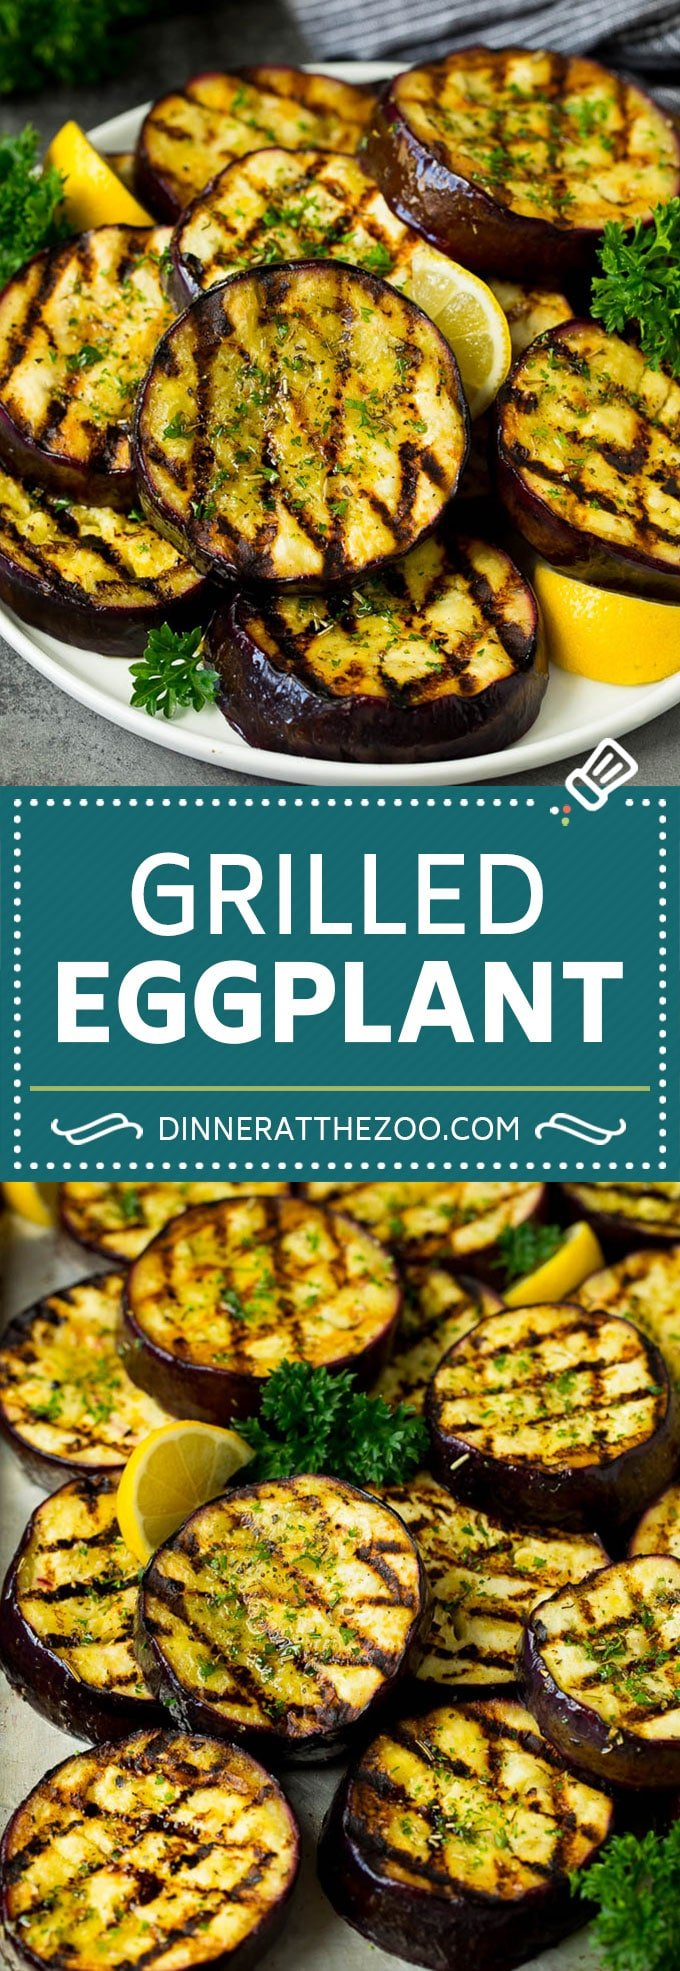 Grilled Eggplant Recipe #eggplant #grilling #dinner #dinneratthezoo